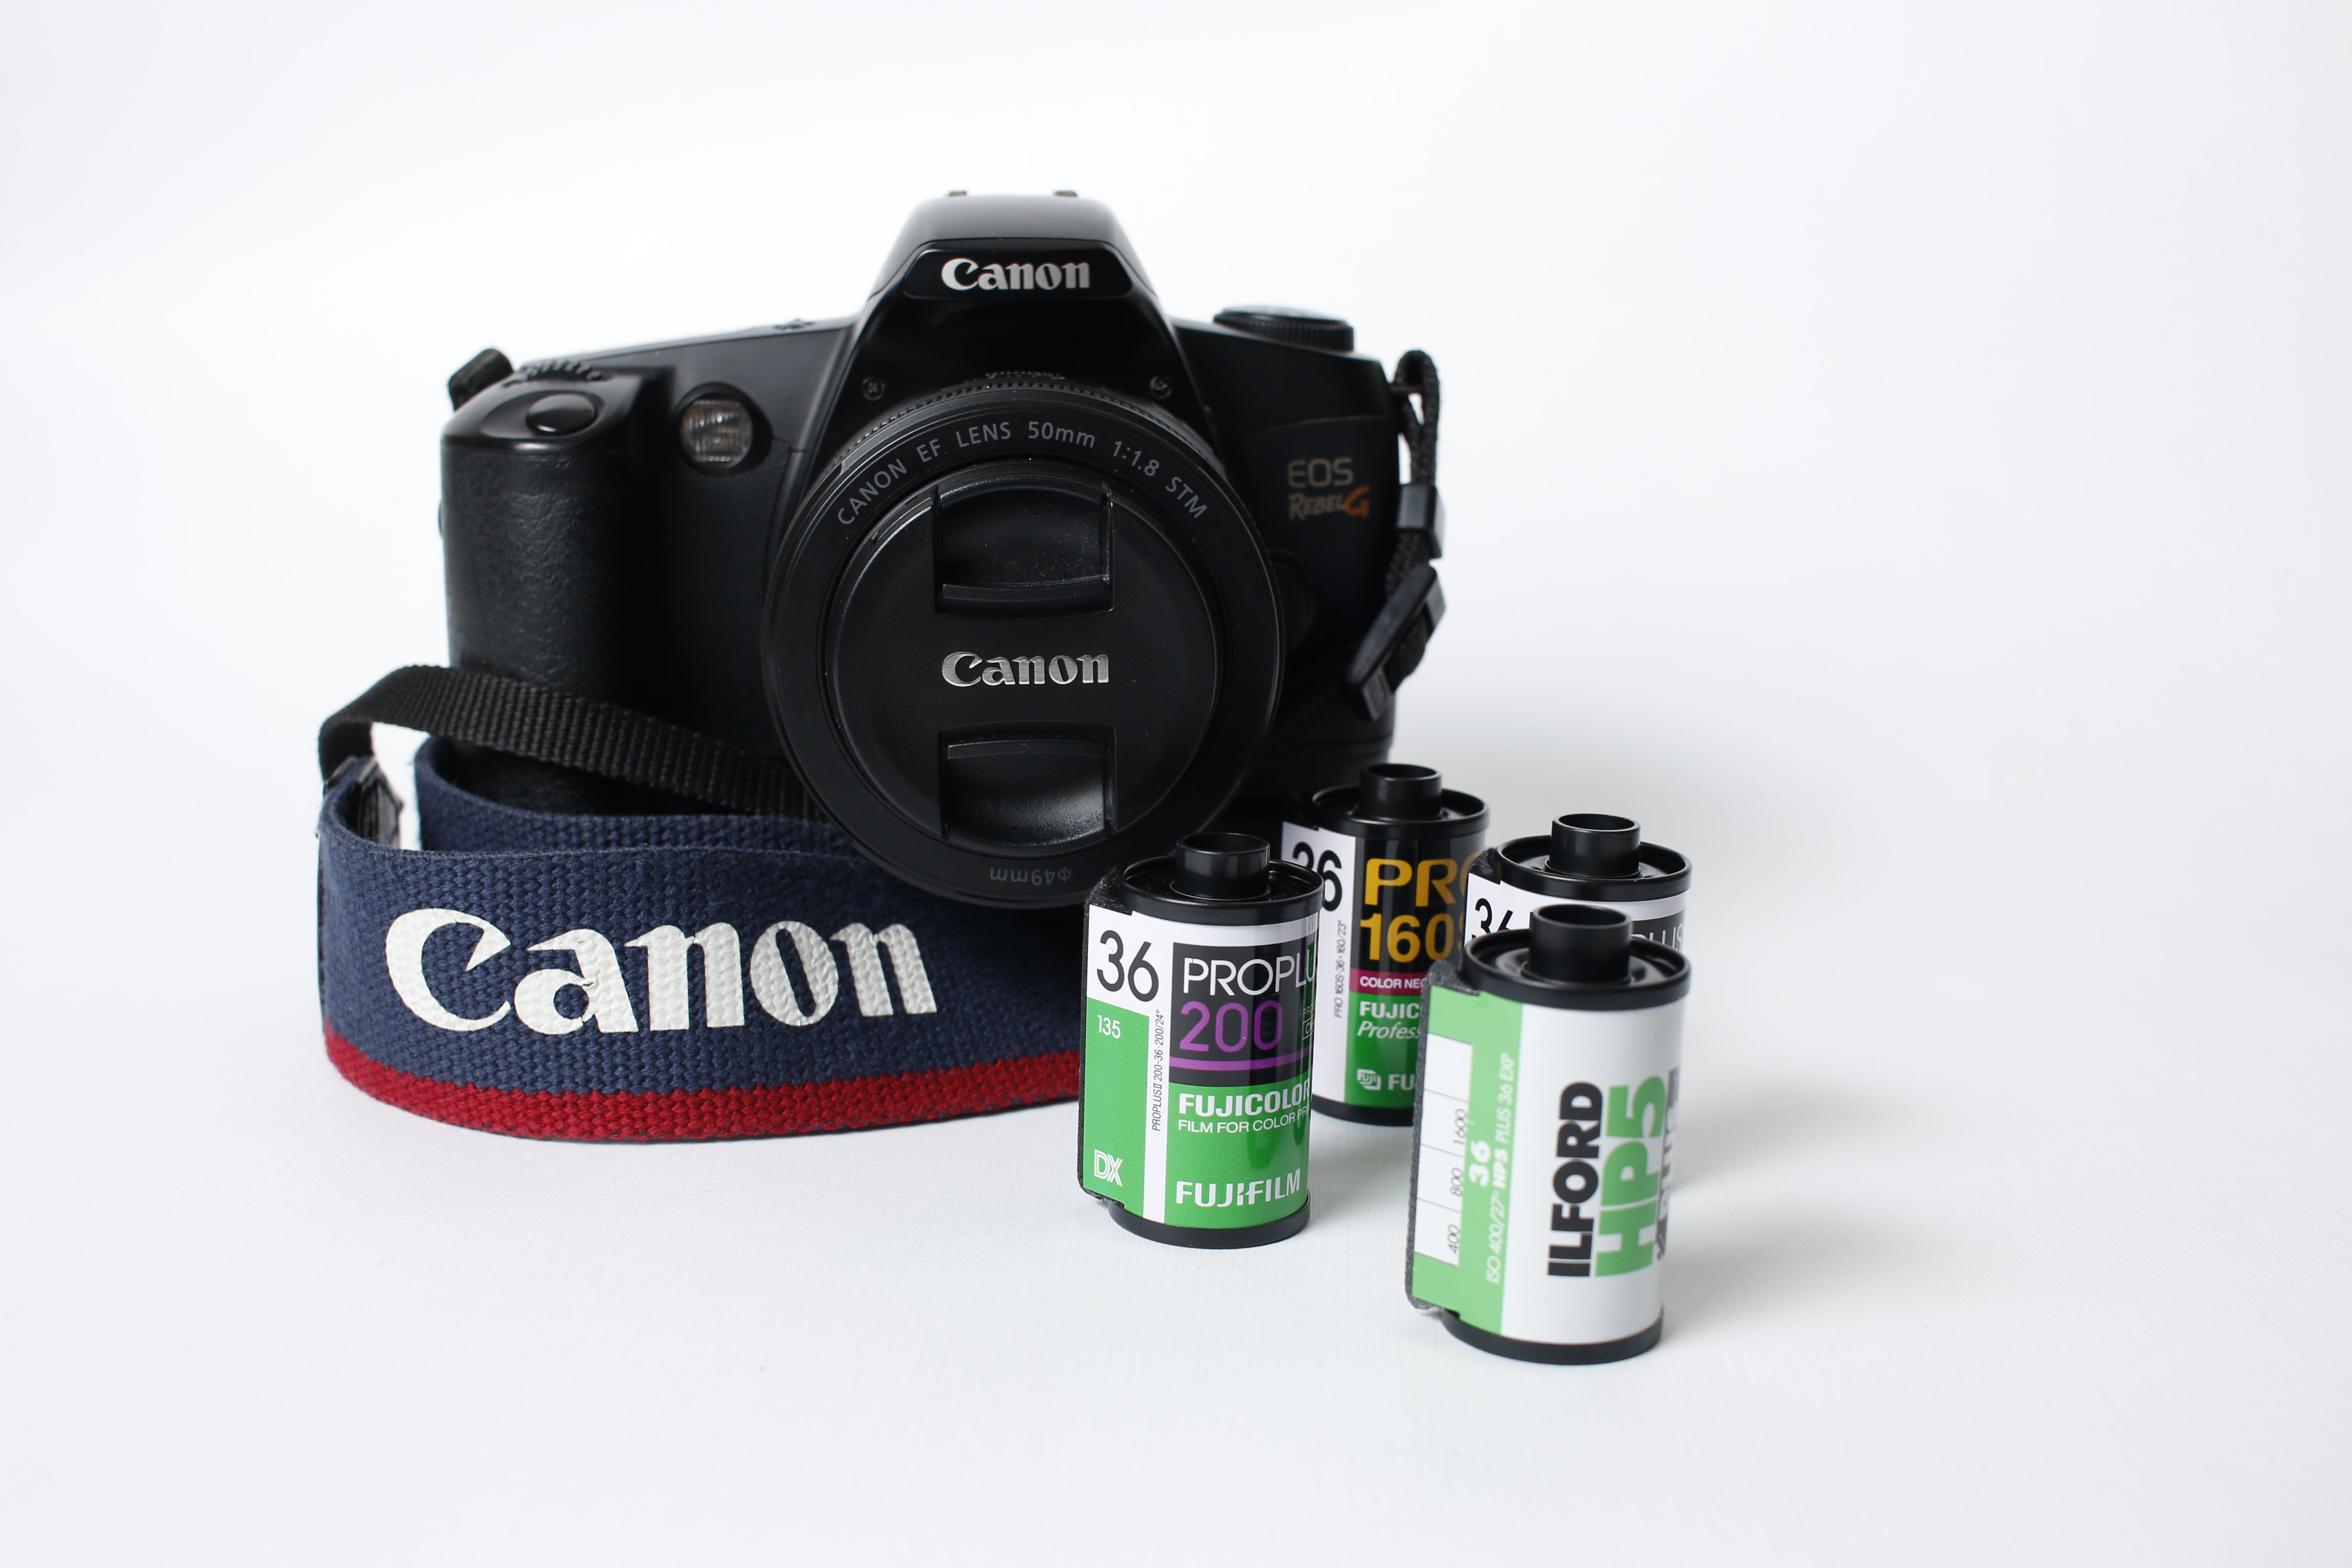 Black Canon Eos Camera Beside Four Camera Films On White Surface